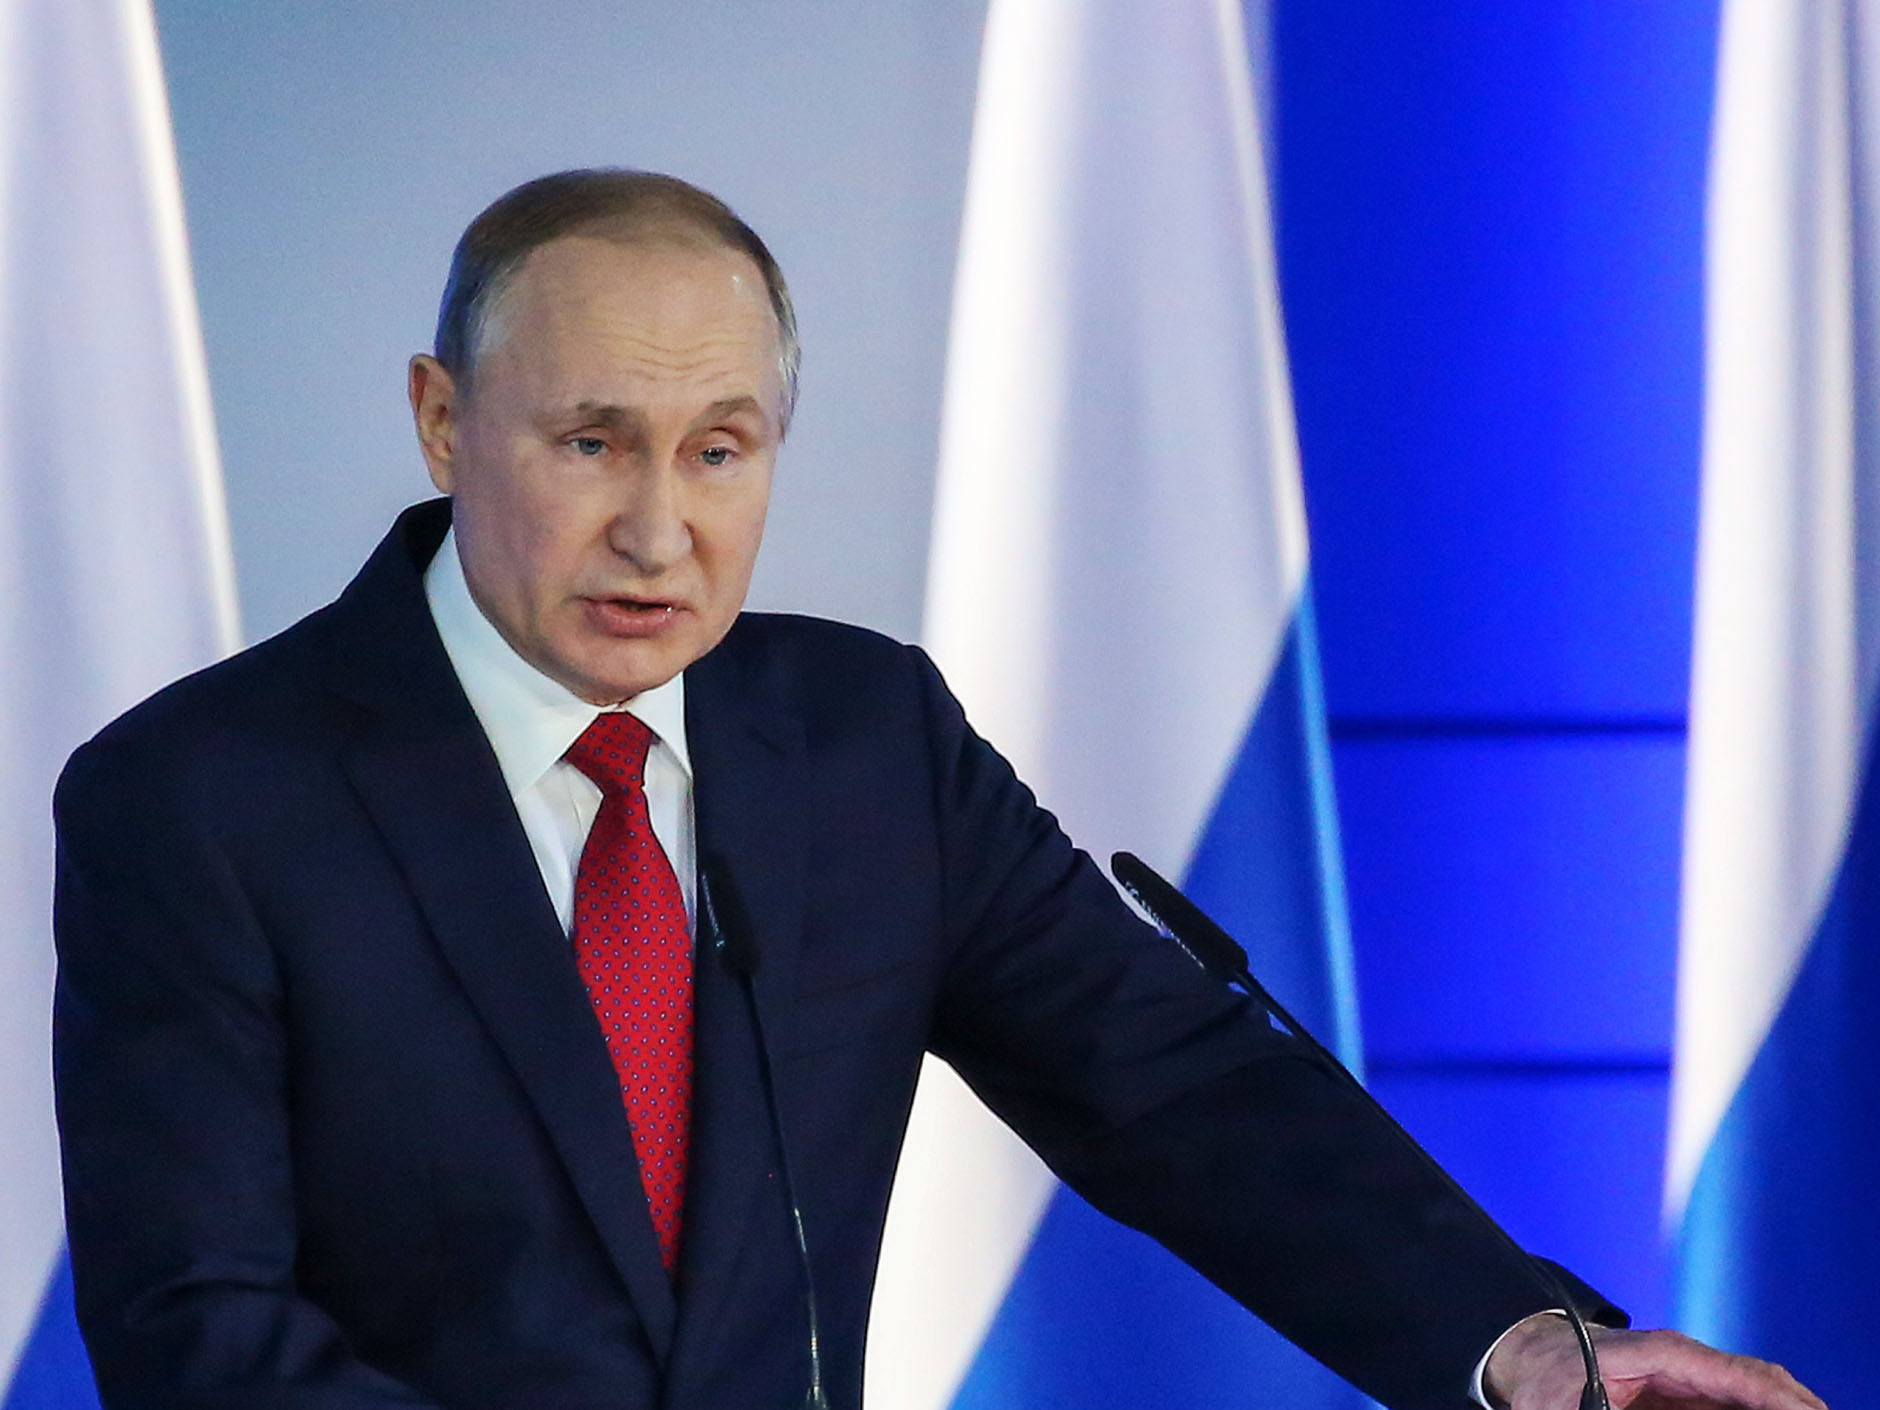 Putin Outlines Sweeping Powers For State Council In Shakeup Bloomberg